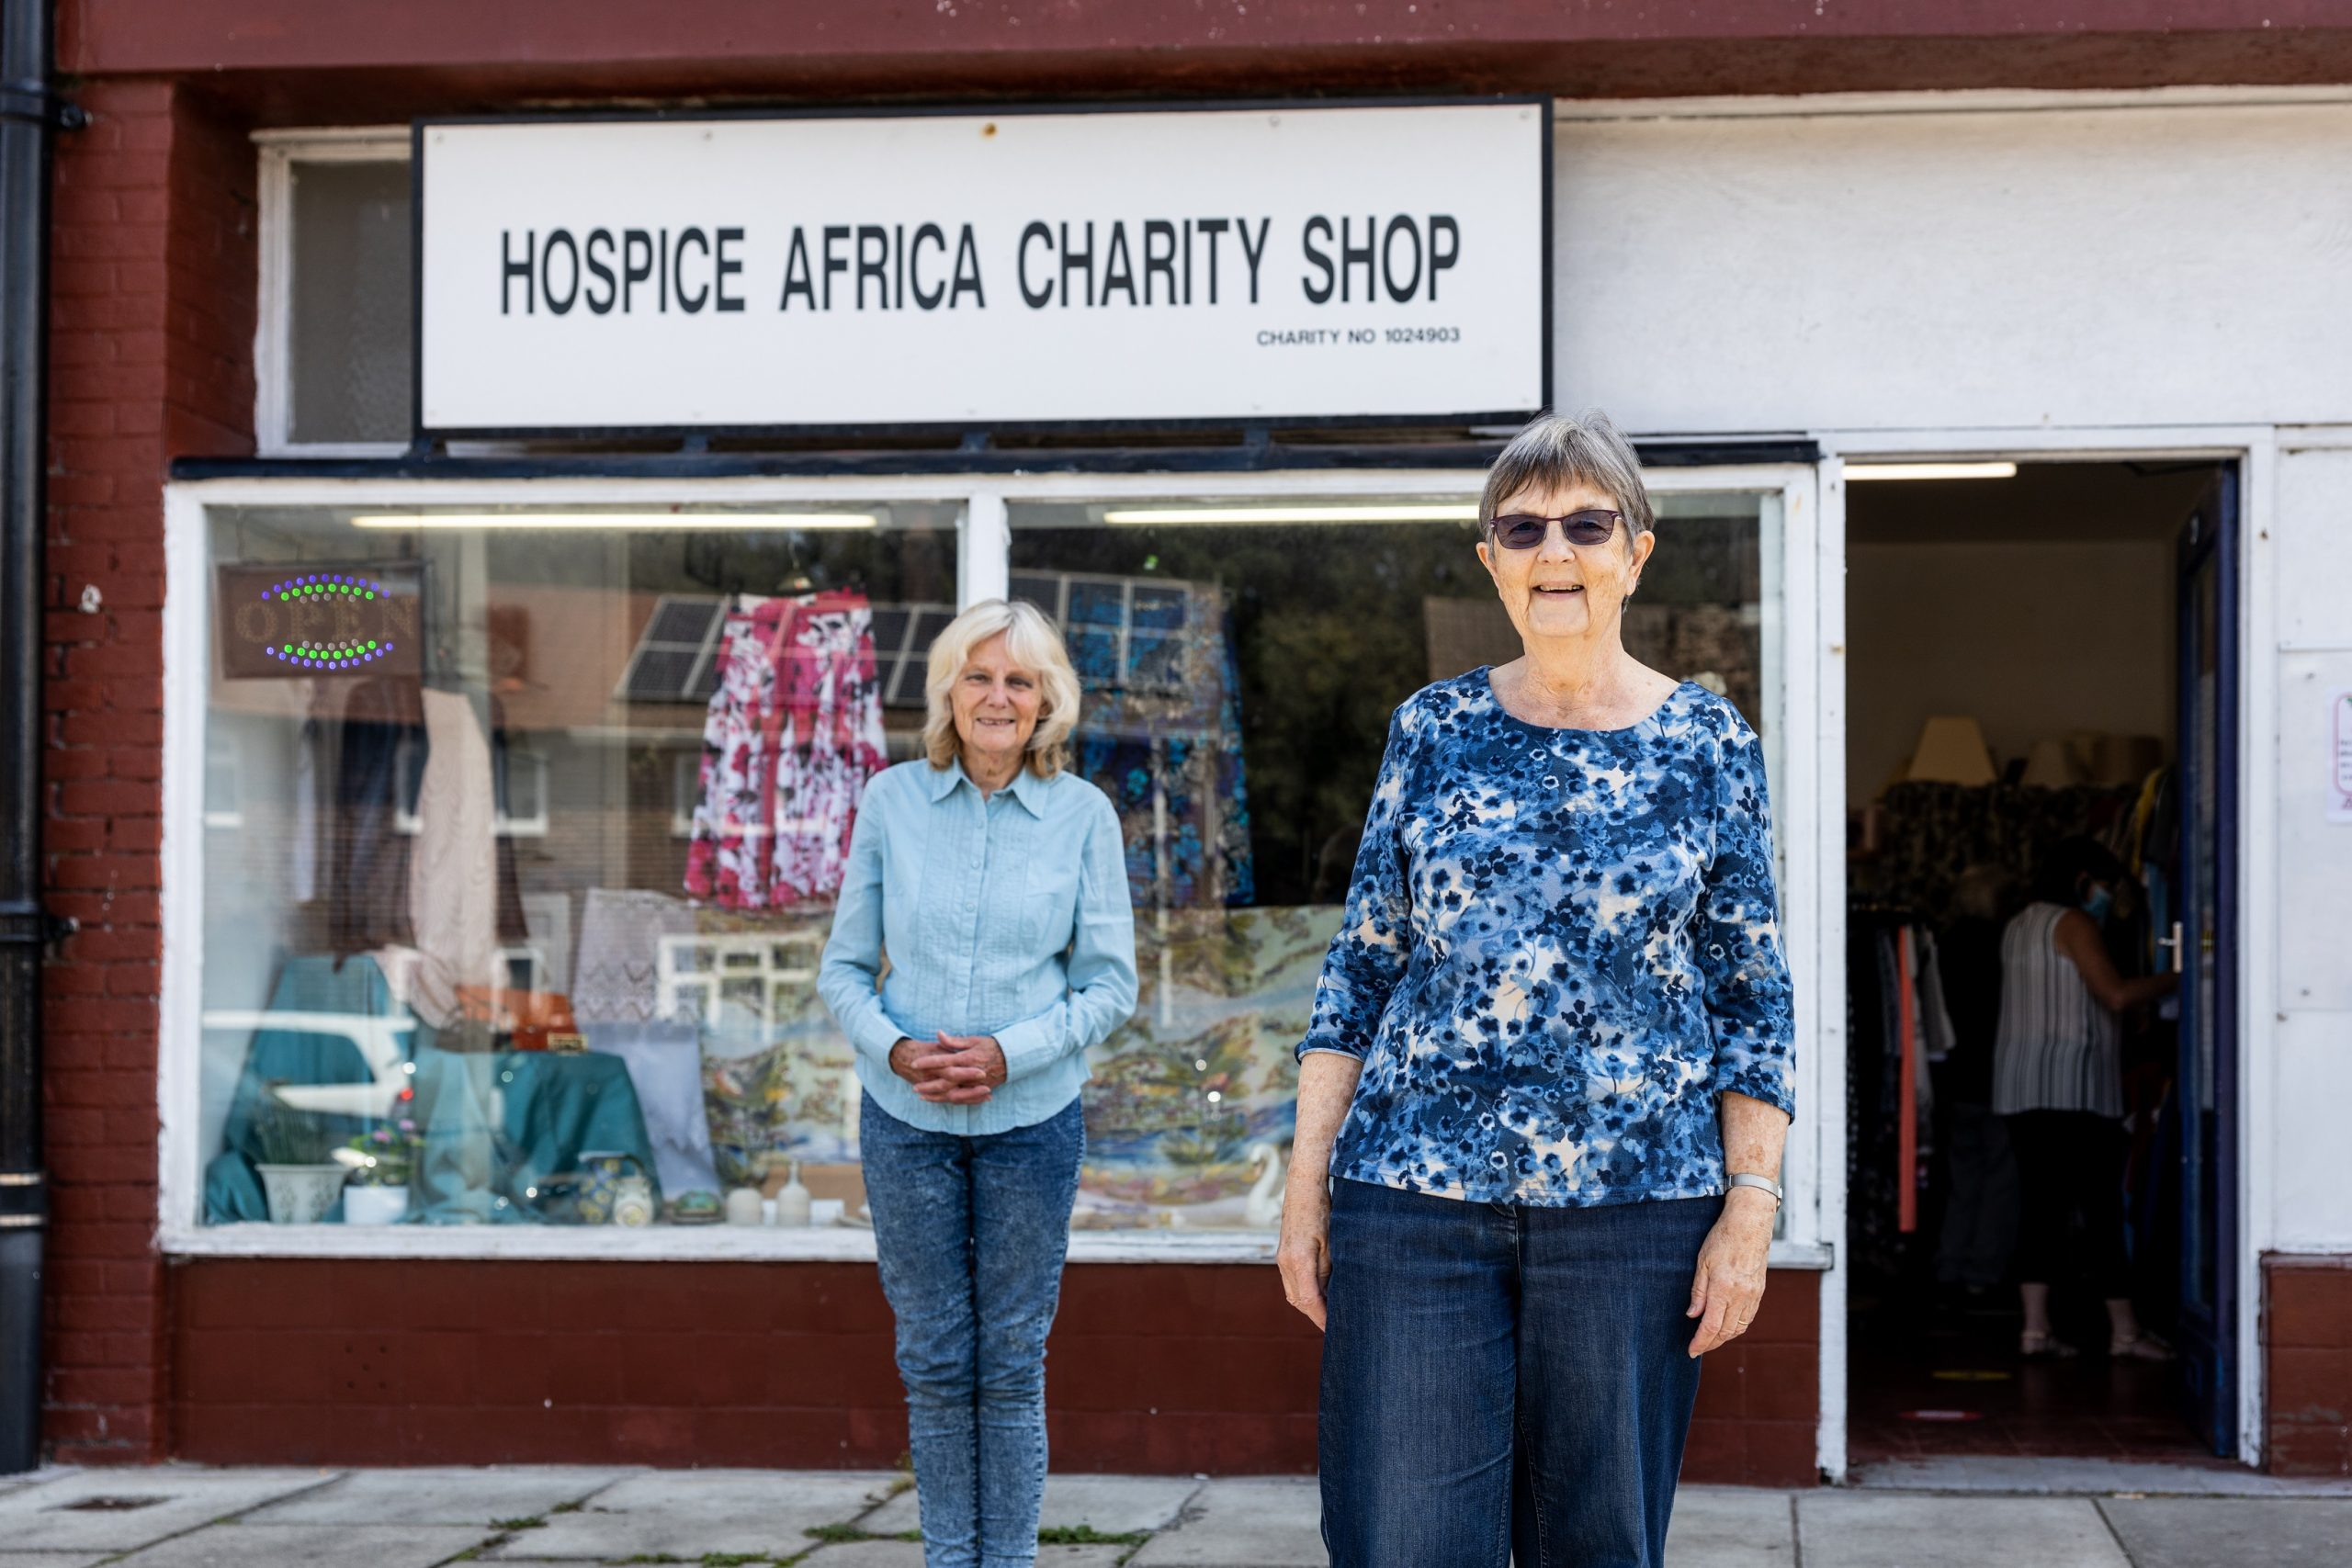 Hospice Africa Charity Shop 211 Heathfield Rd, Ainsdale, Southport PR8 3HE